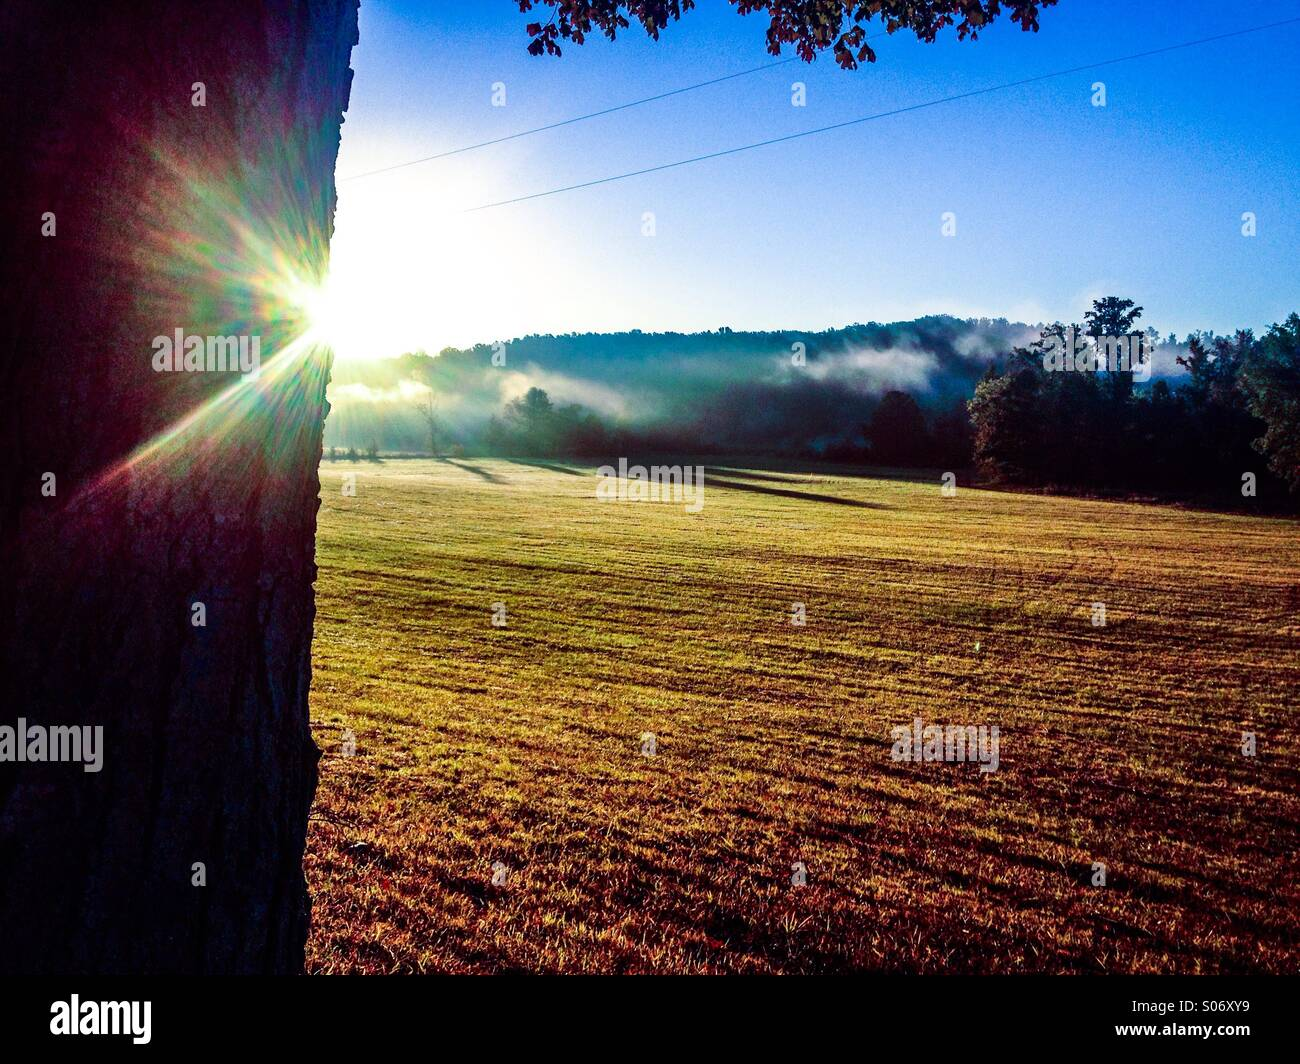 Colorful mornings - Stock Image